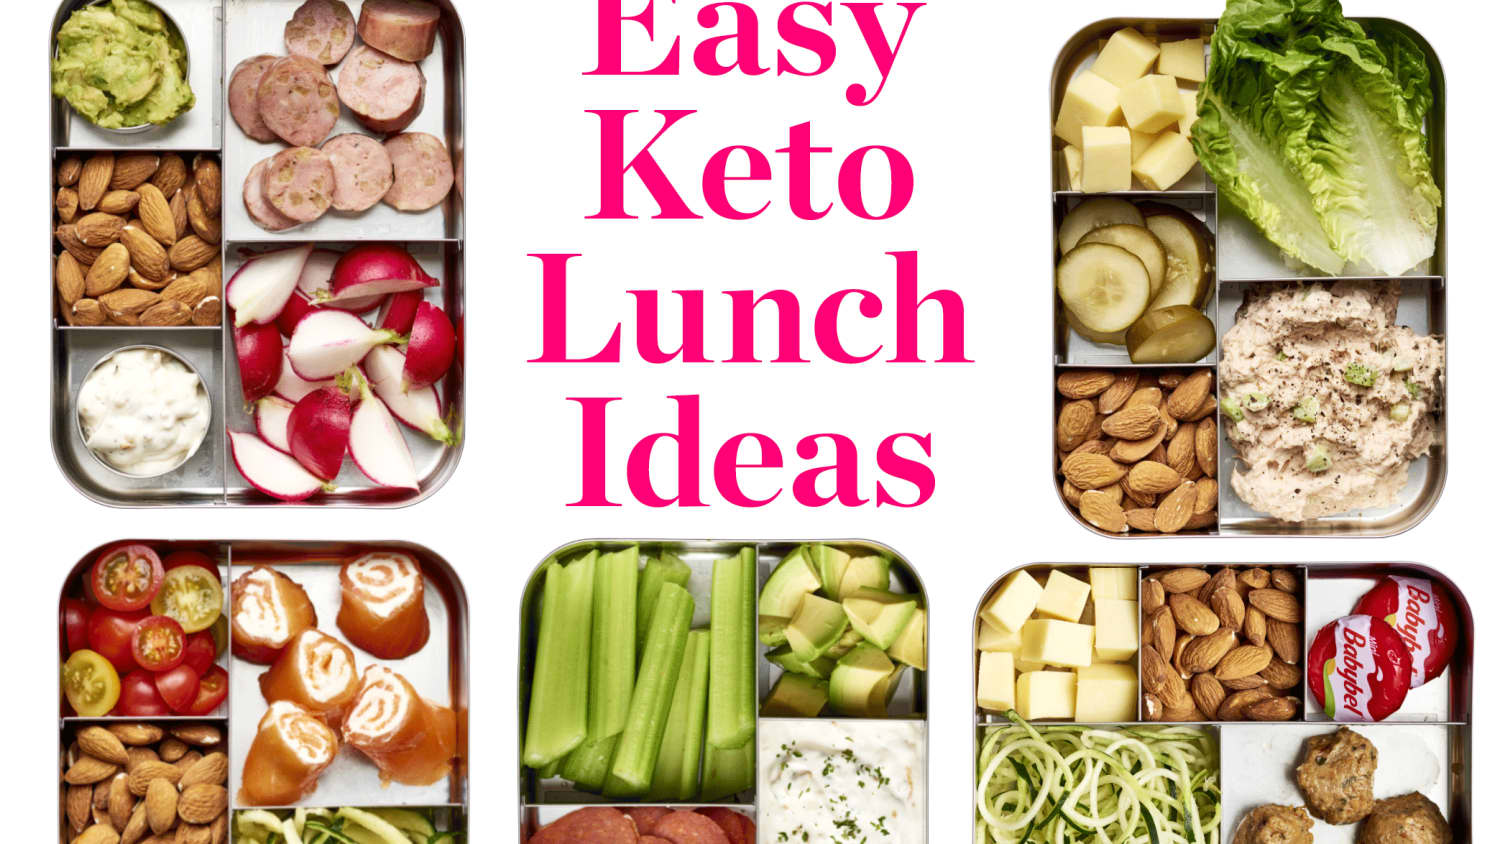 10 Easy Keto Lunch Ideas with Net Carb Counts | Kitchn